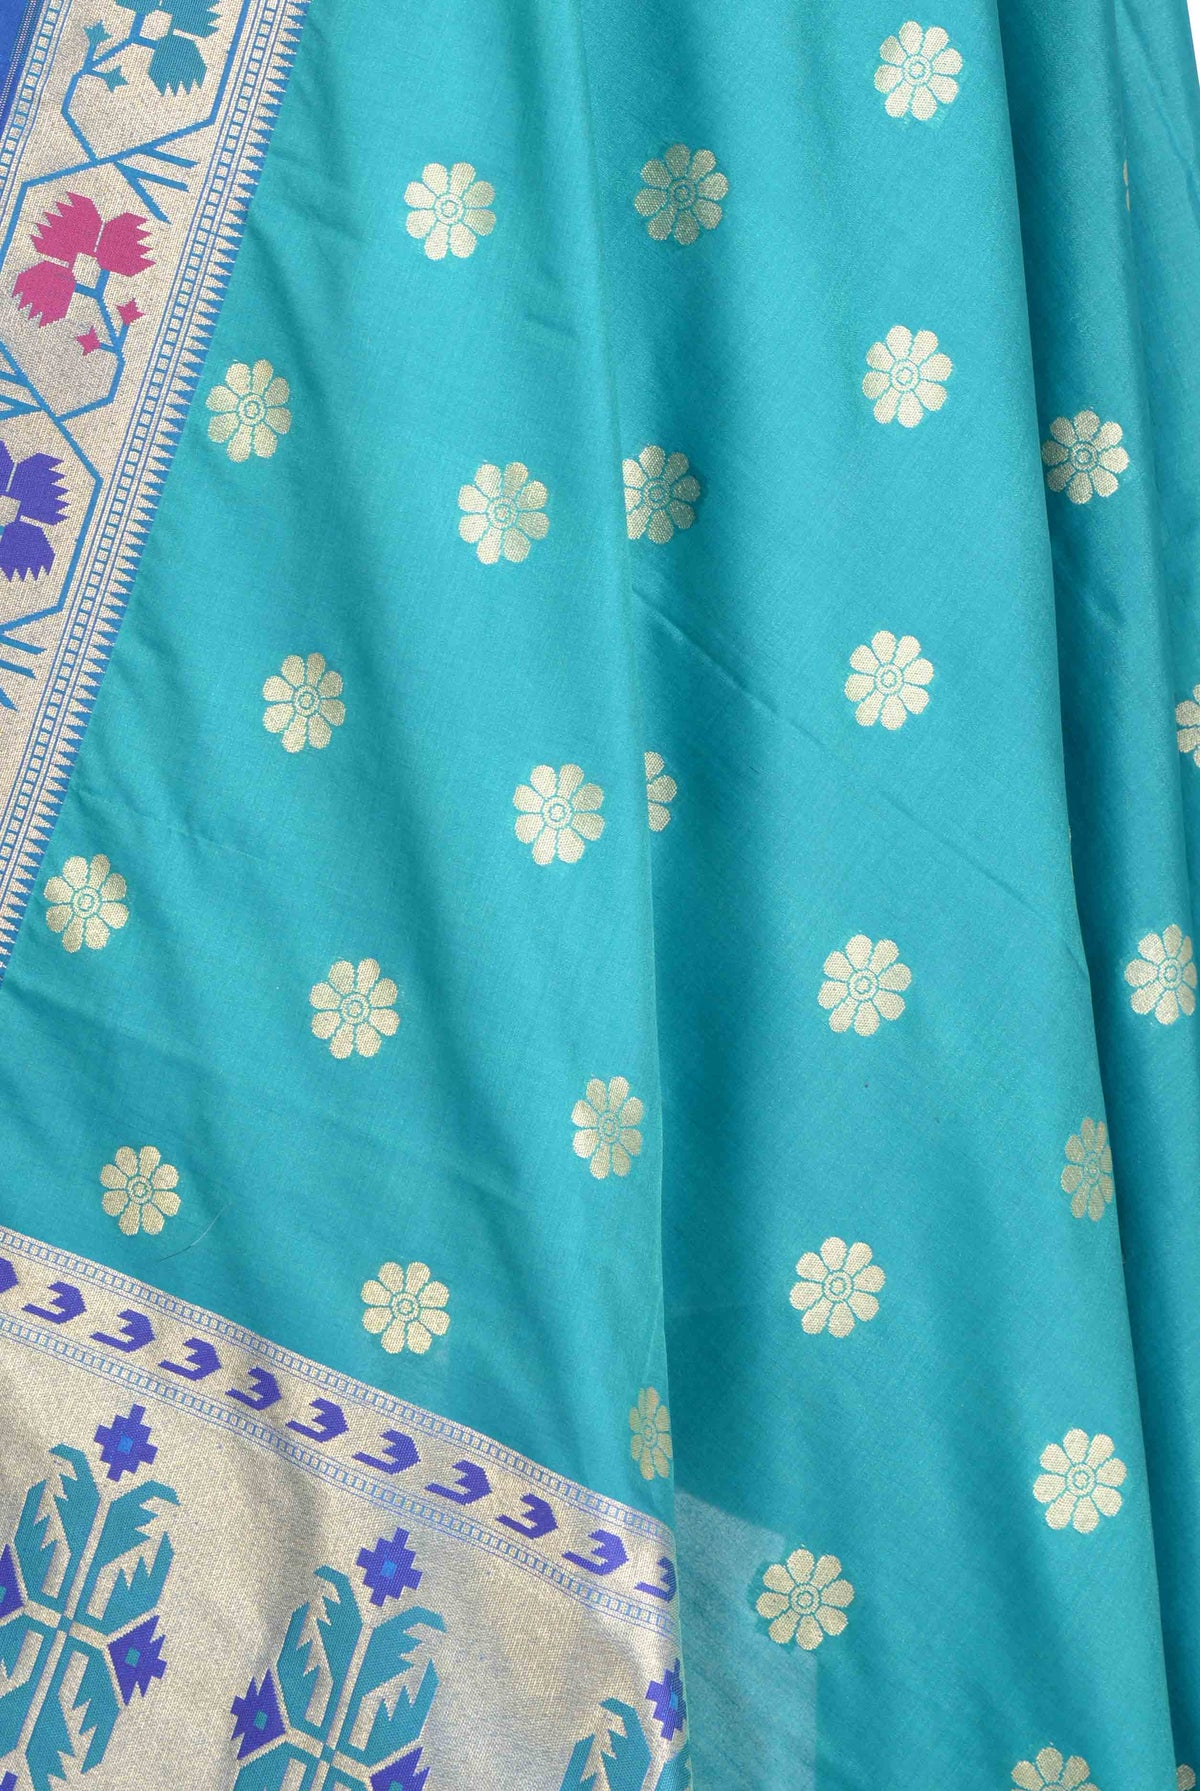 Turquoise Banarasi Dupatta with multi color border with floral motif 2 closeup